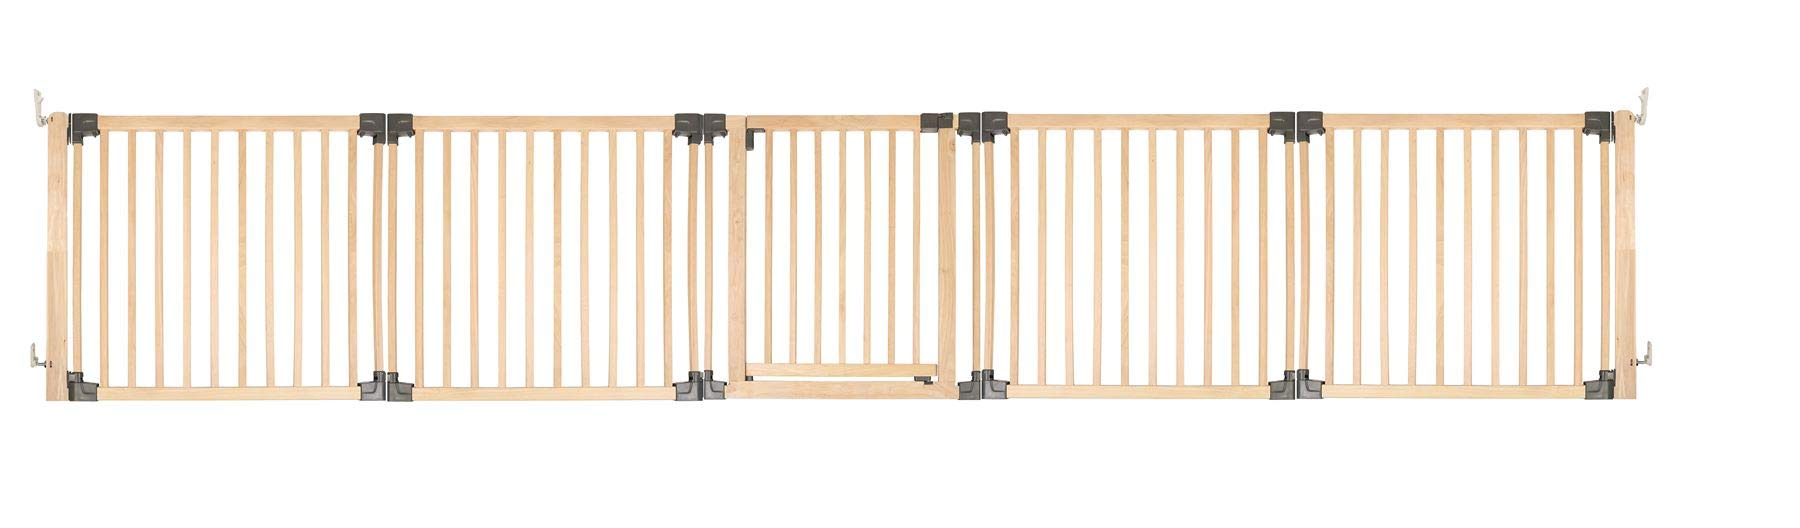 Safetots Wooden Multi Panel Room Divider Up to 416.5CM Safetots Made from premium grade wood designed to compliment all home interiors Each panel can be angled as required to make custom fit room dividing configurations This configuration comes complete with a wall mounting kit, one 80cm gate panel and four 80cm extension panels 1